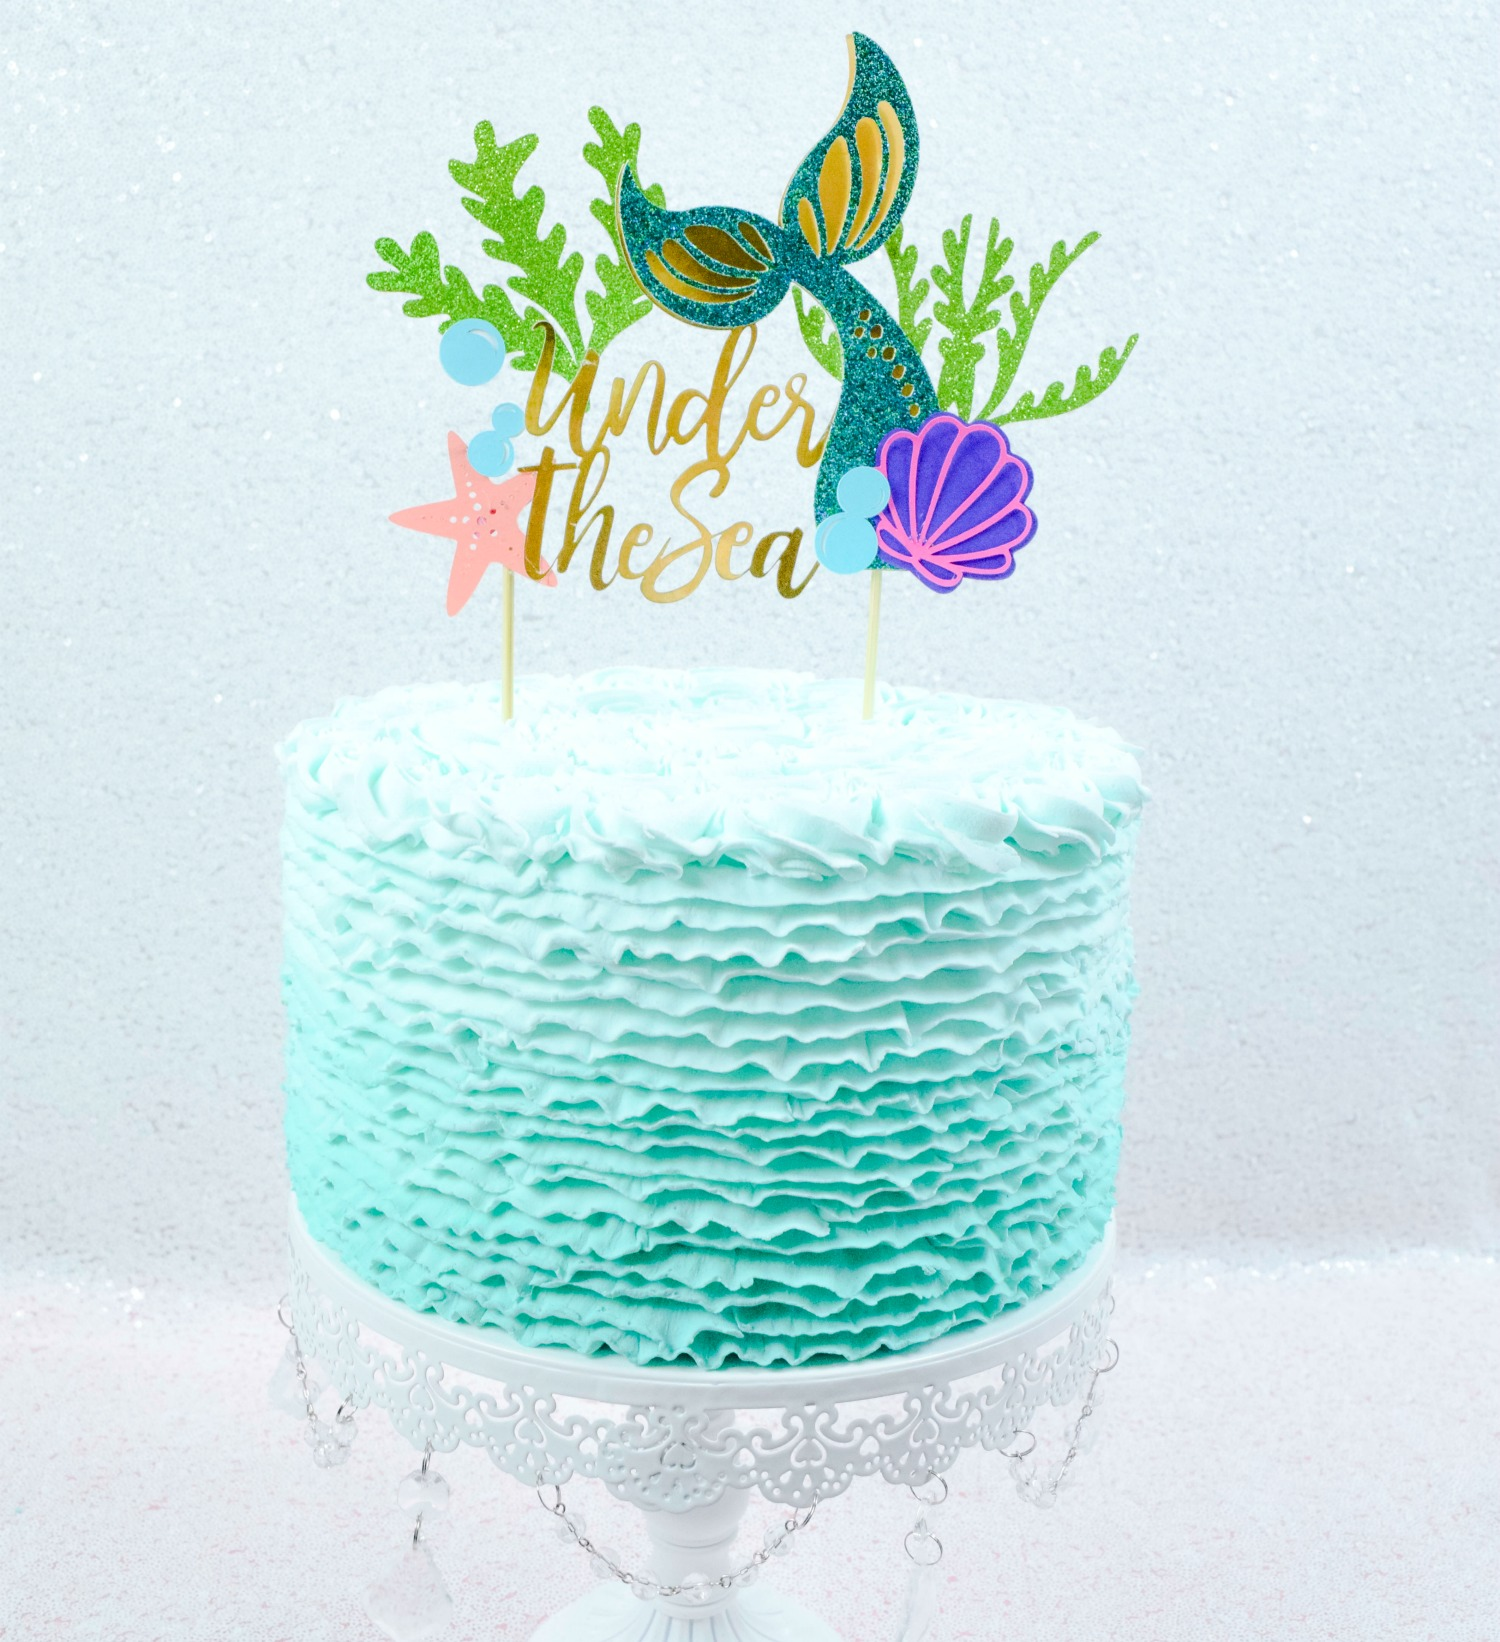 picture about Printable Cake Topper Templates identified as Mermaid Tail Cake Topper: Do-it-yourself Birthday Cake Topper Guide